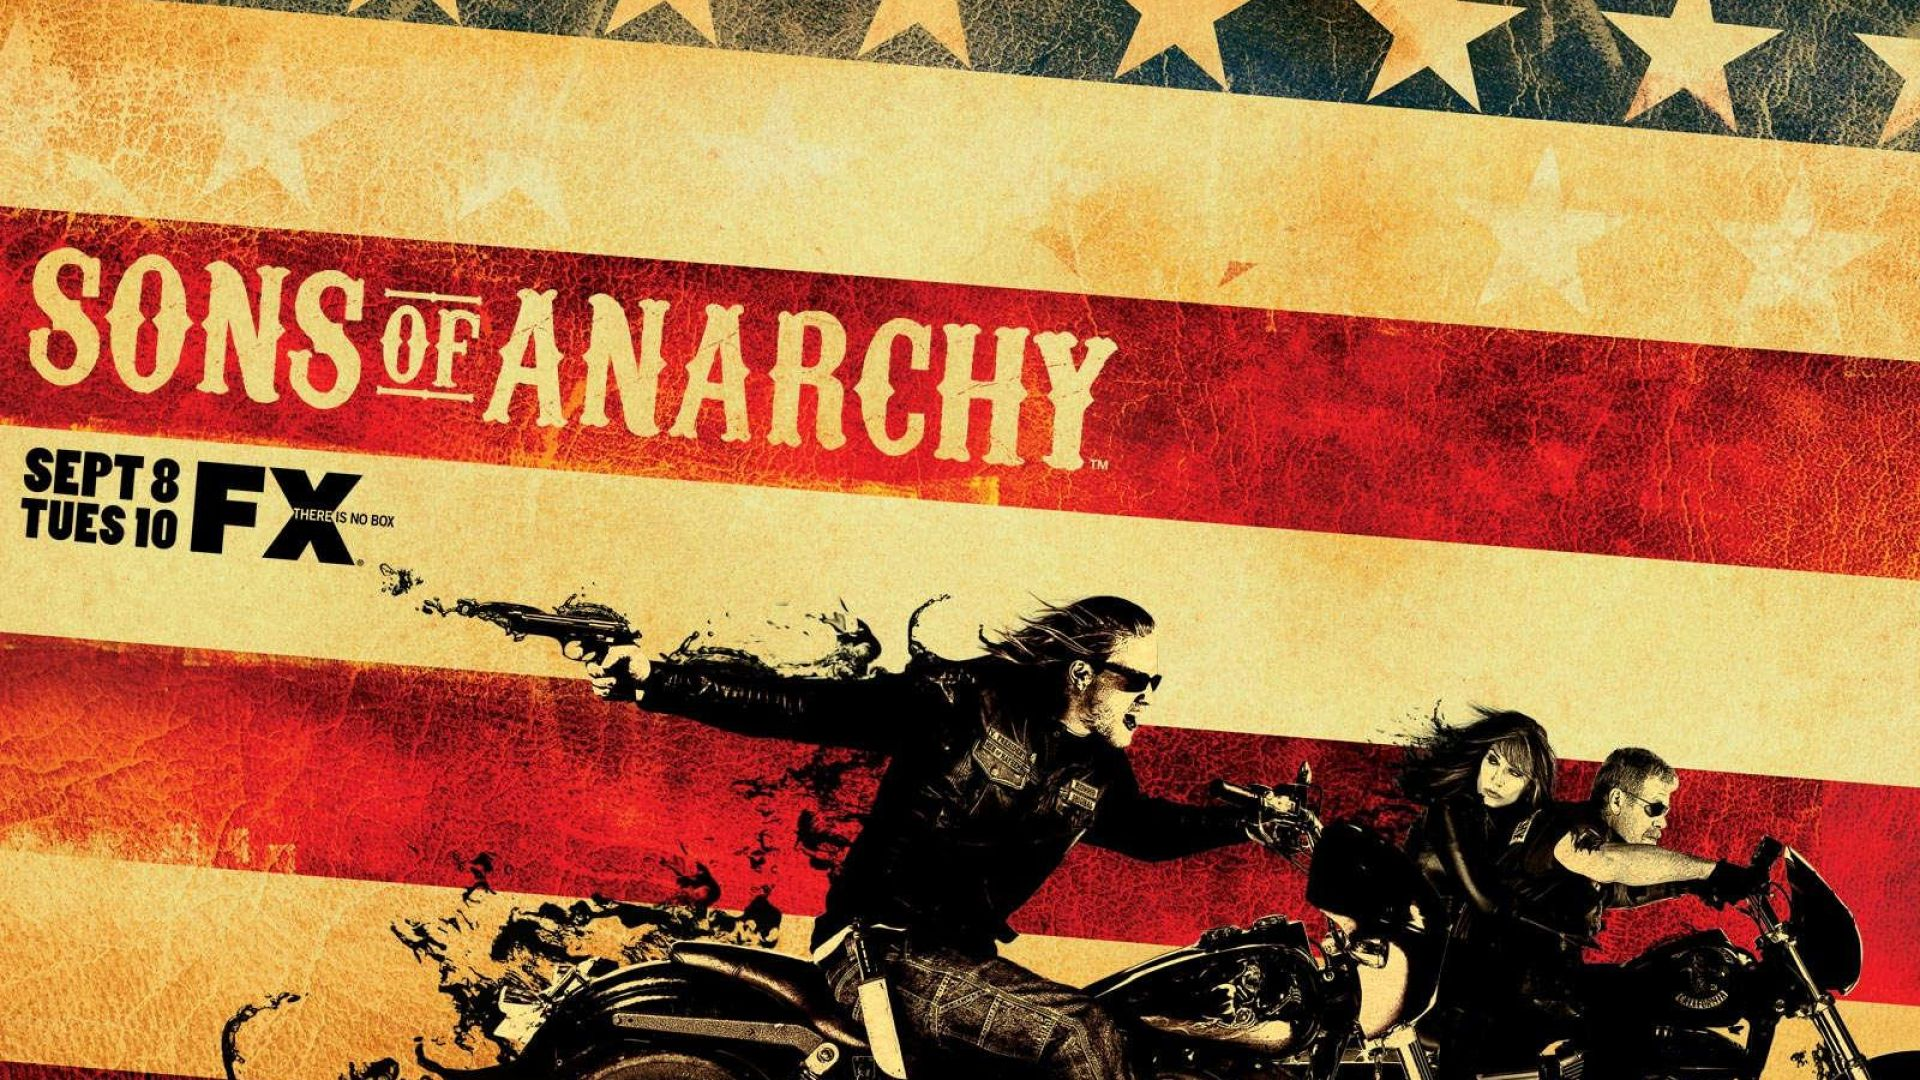 Sons Of Anarchy Wallpaper 18 Wallpapersbq